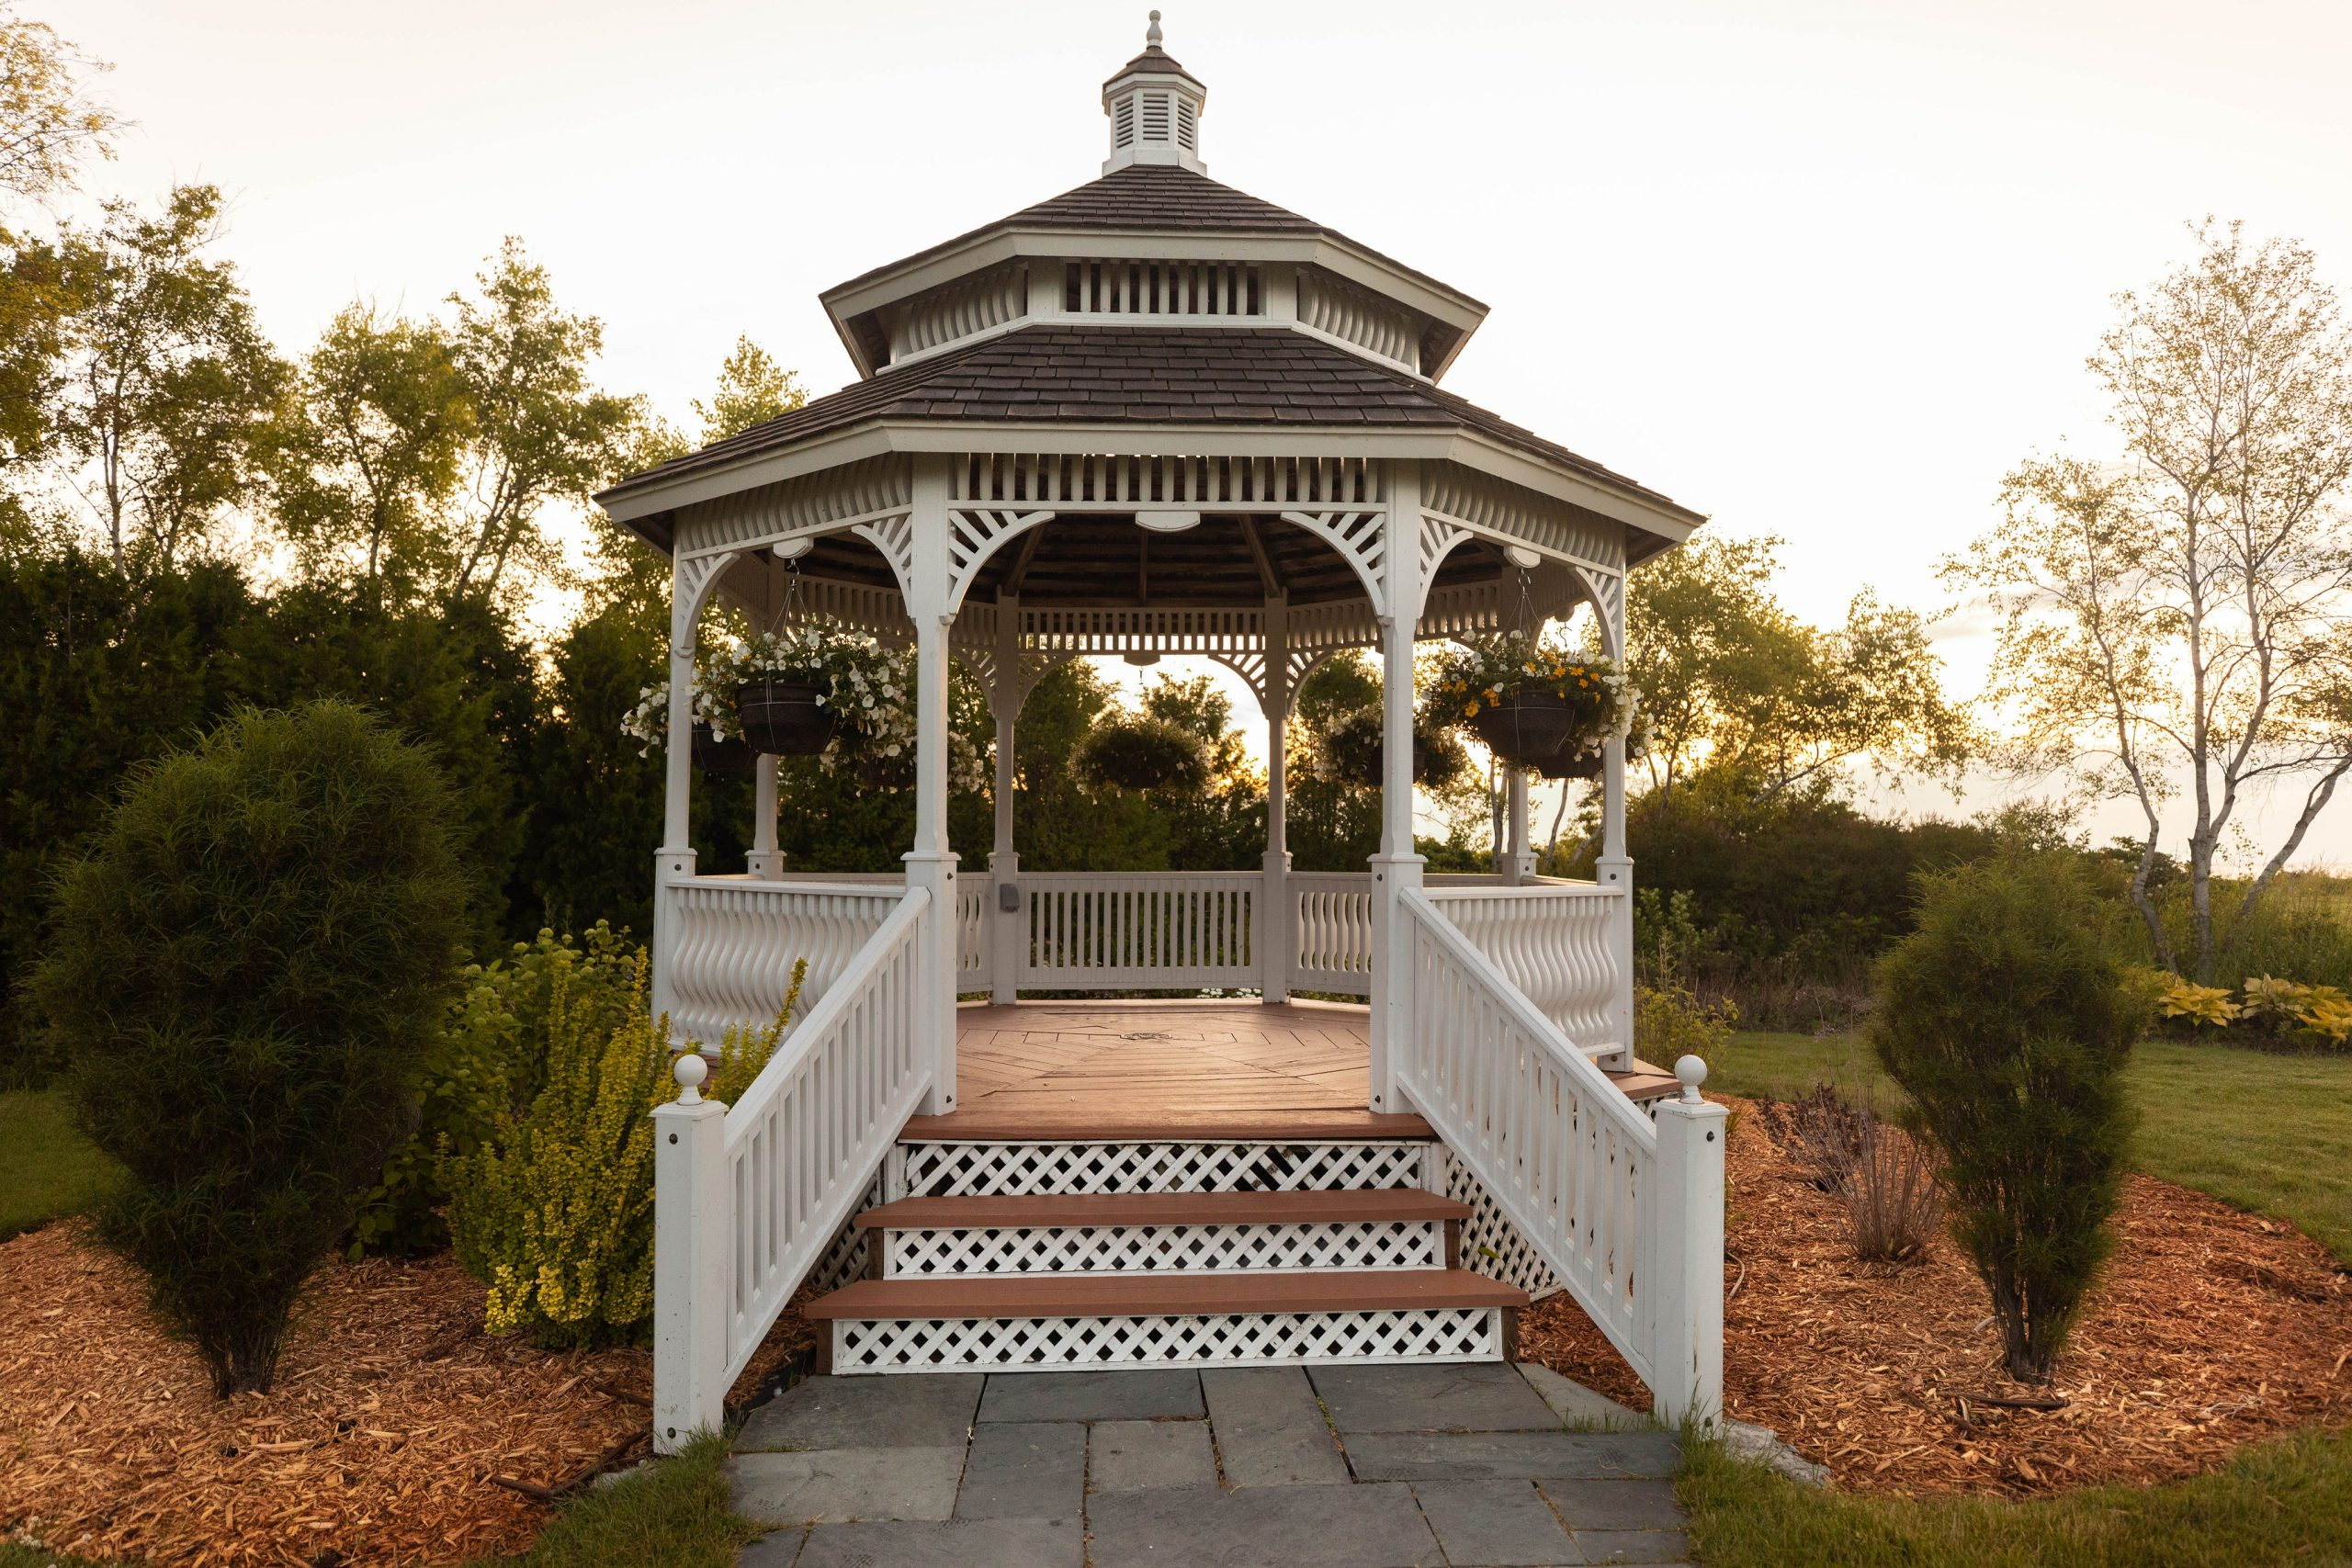 Gazebo at Mission Point Resort on Mackinac Island Michigan by Annie Fairfax @AnnieFairfax